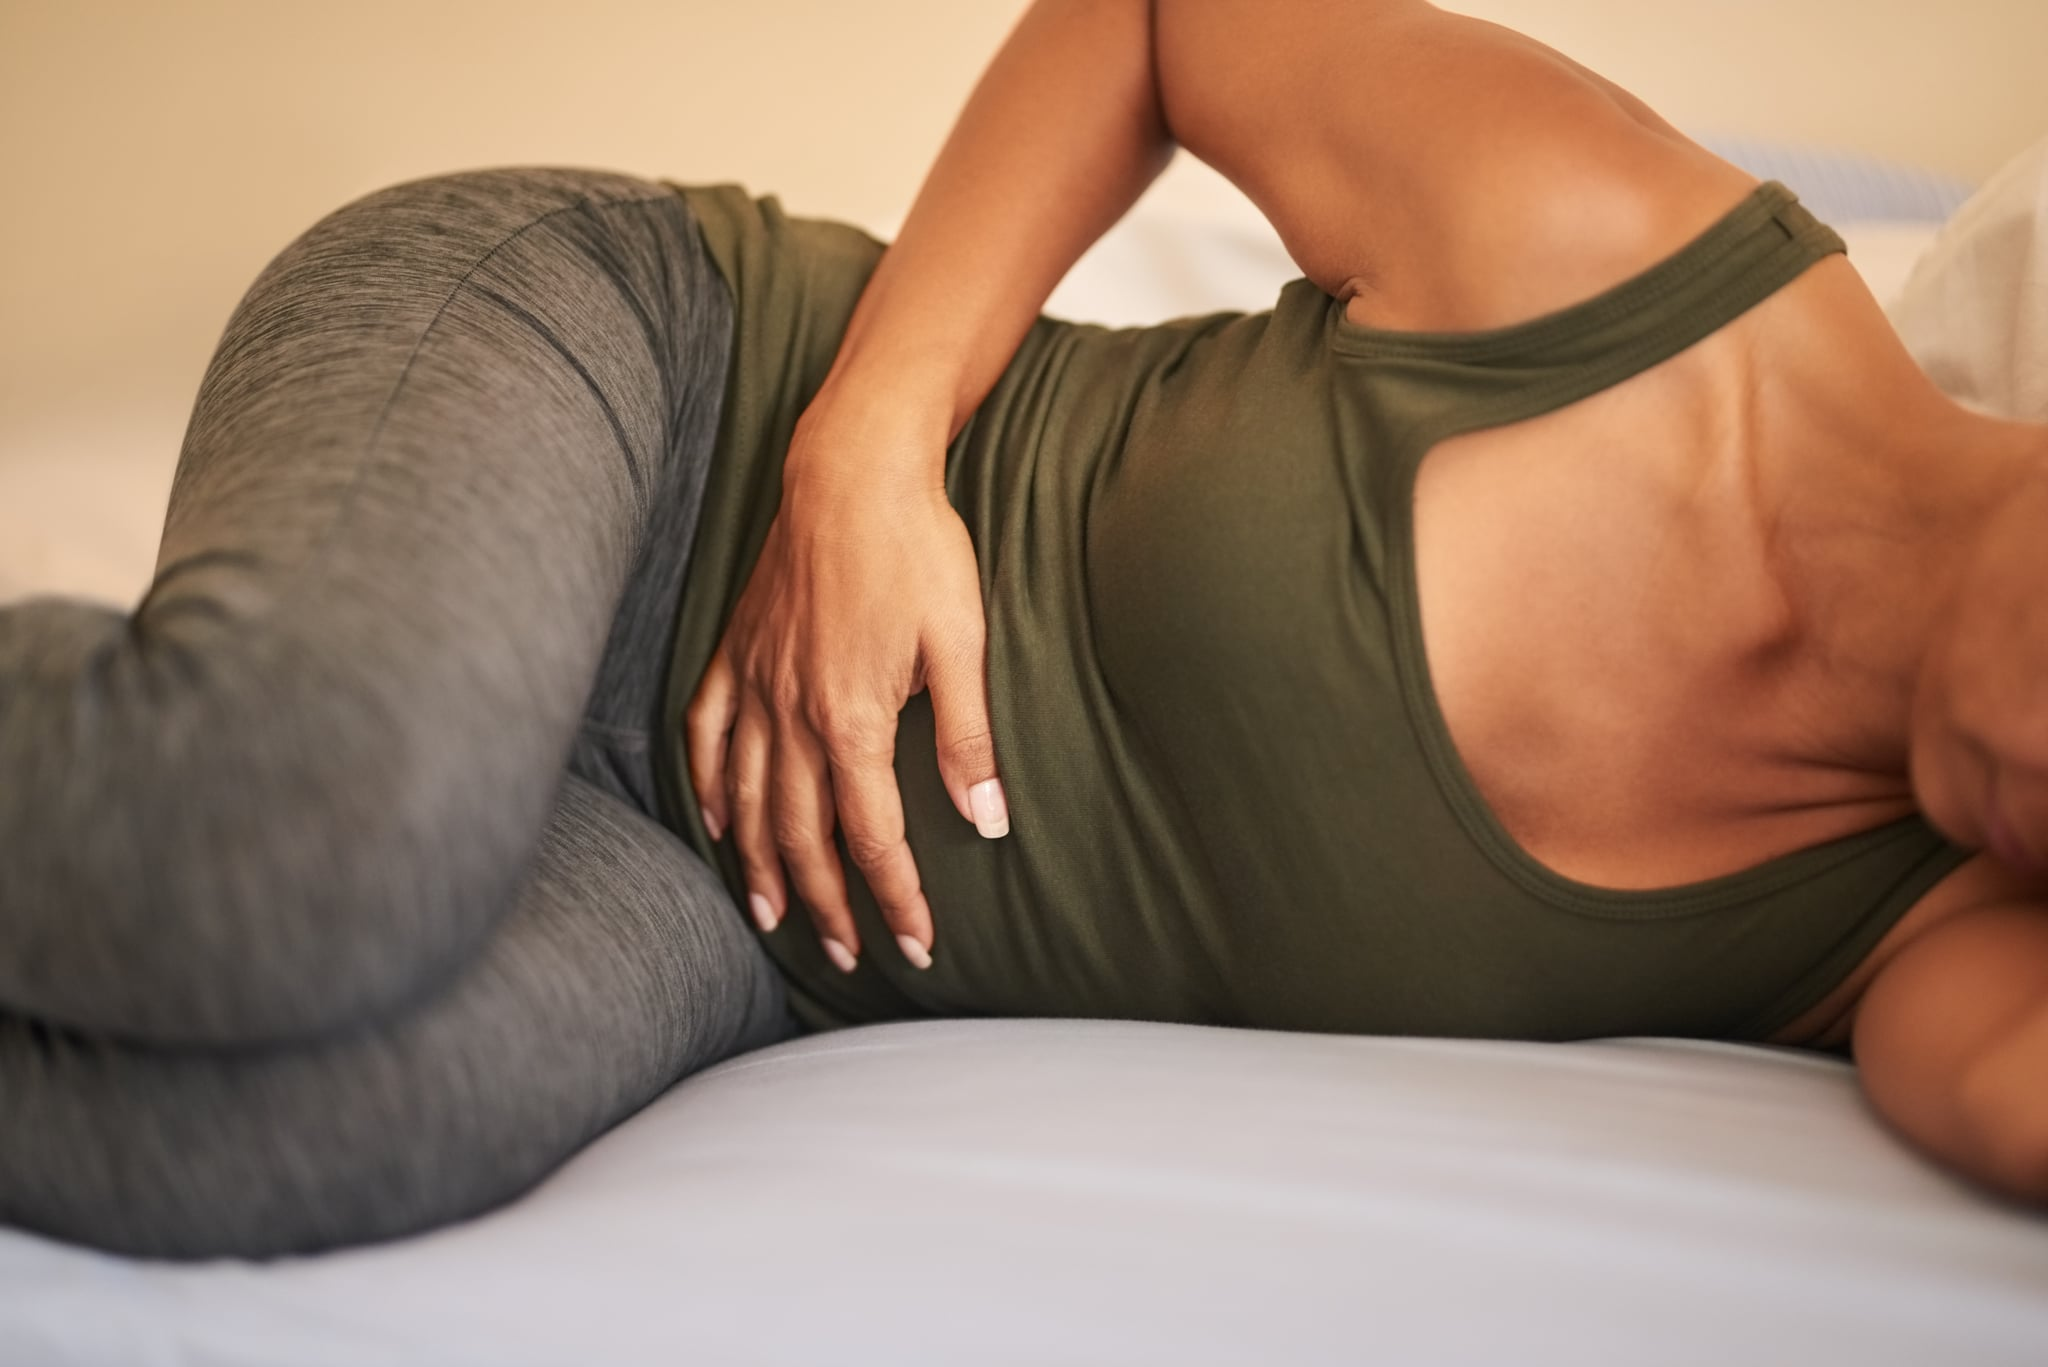 Shot of a woman suffering from stomach ache on bed